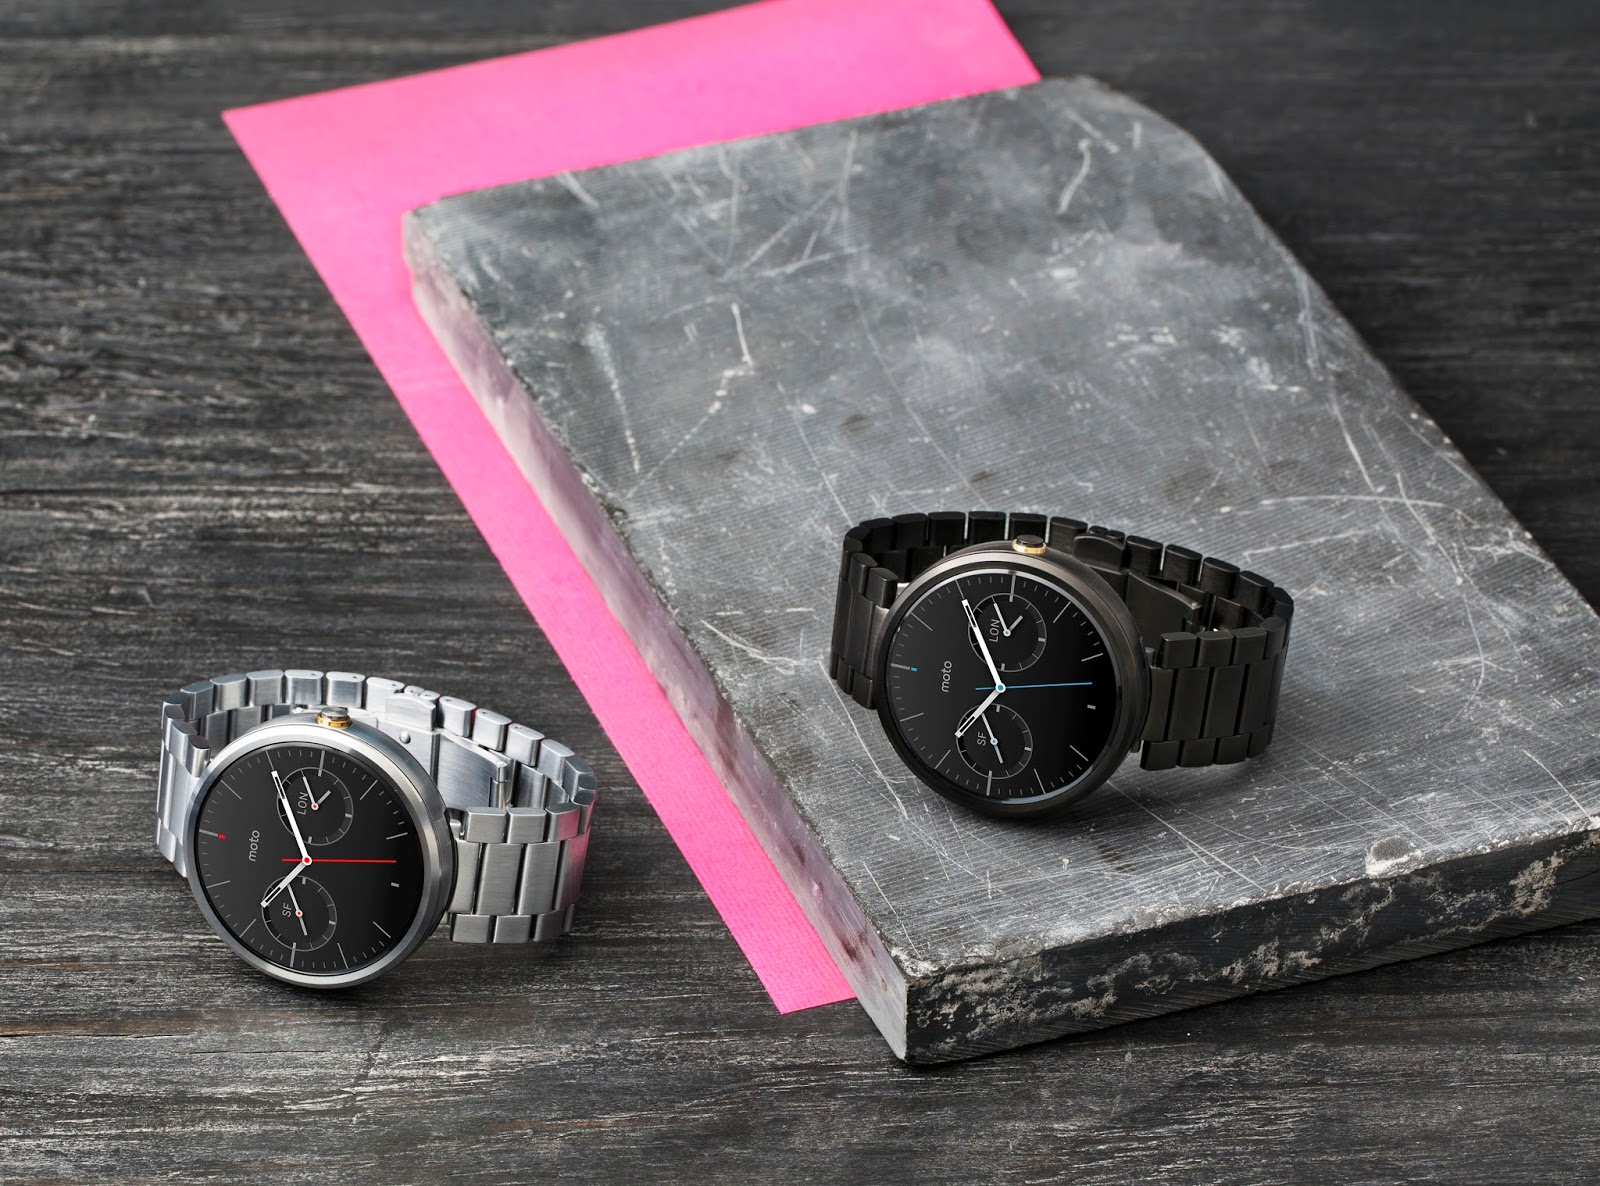 Moto 360: Choose a watch that fits your style